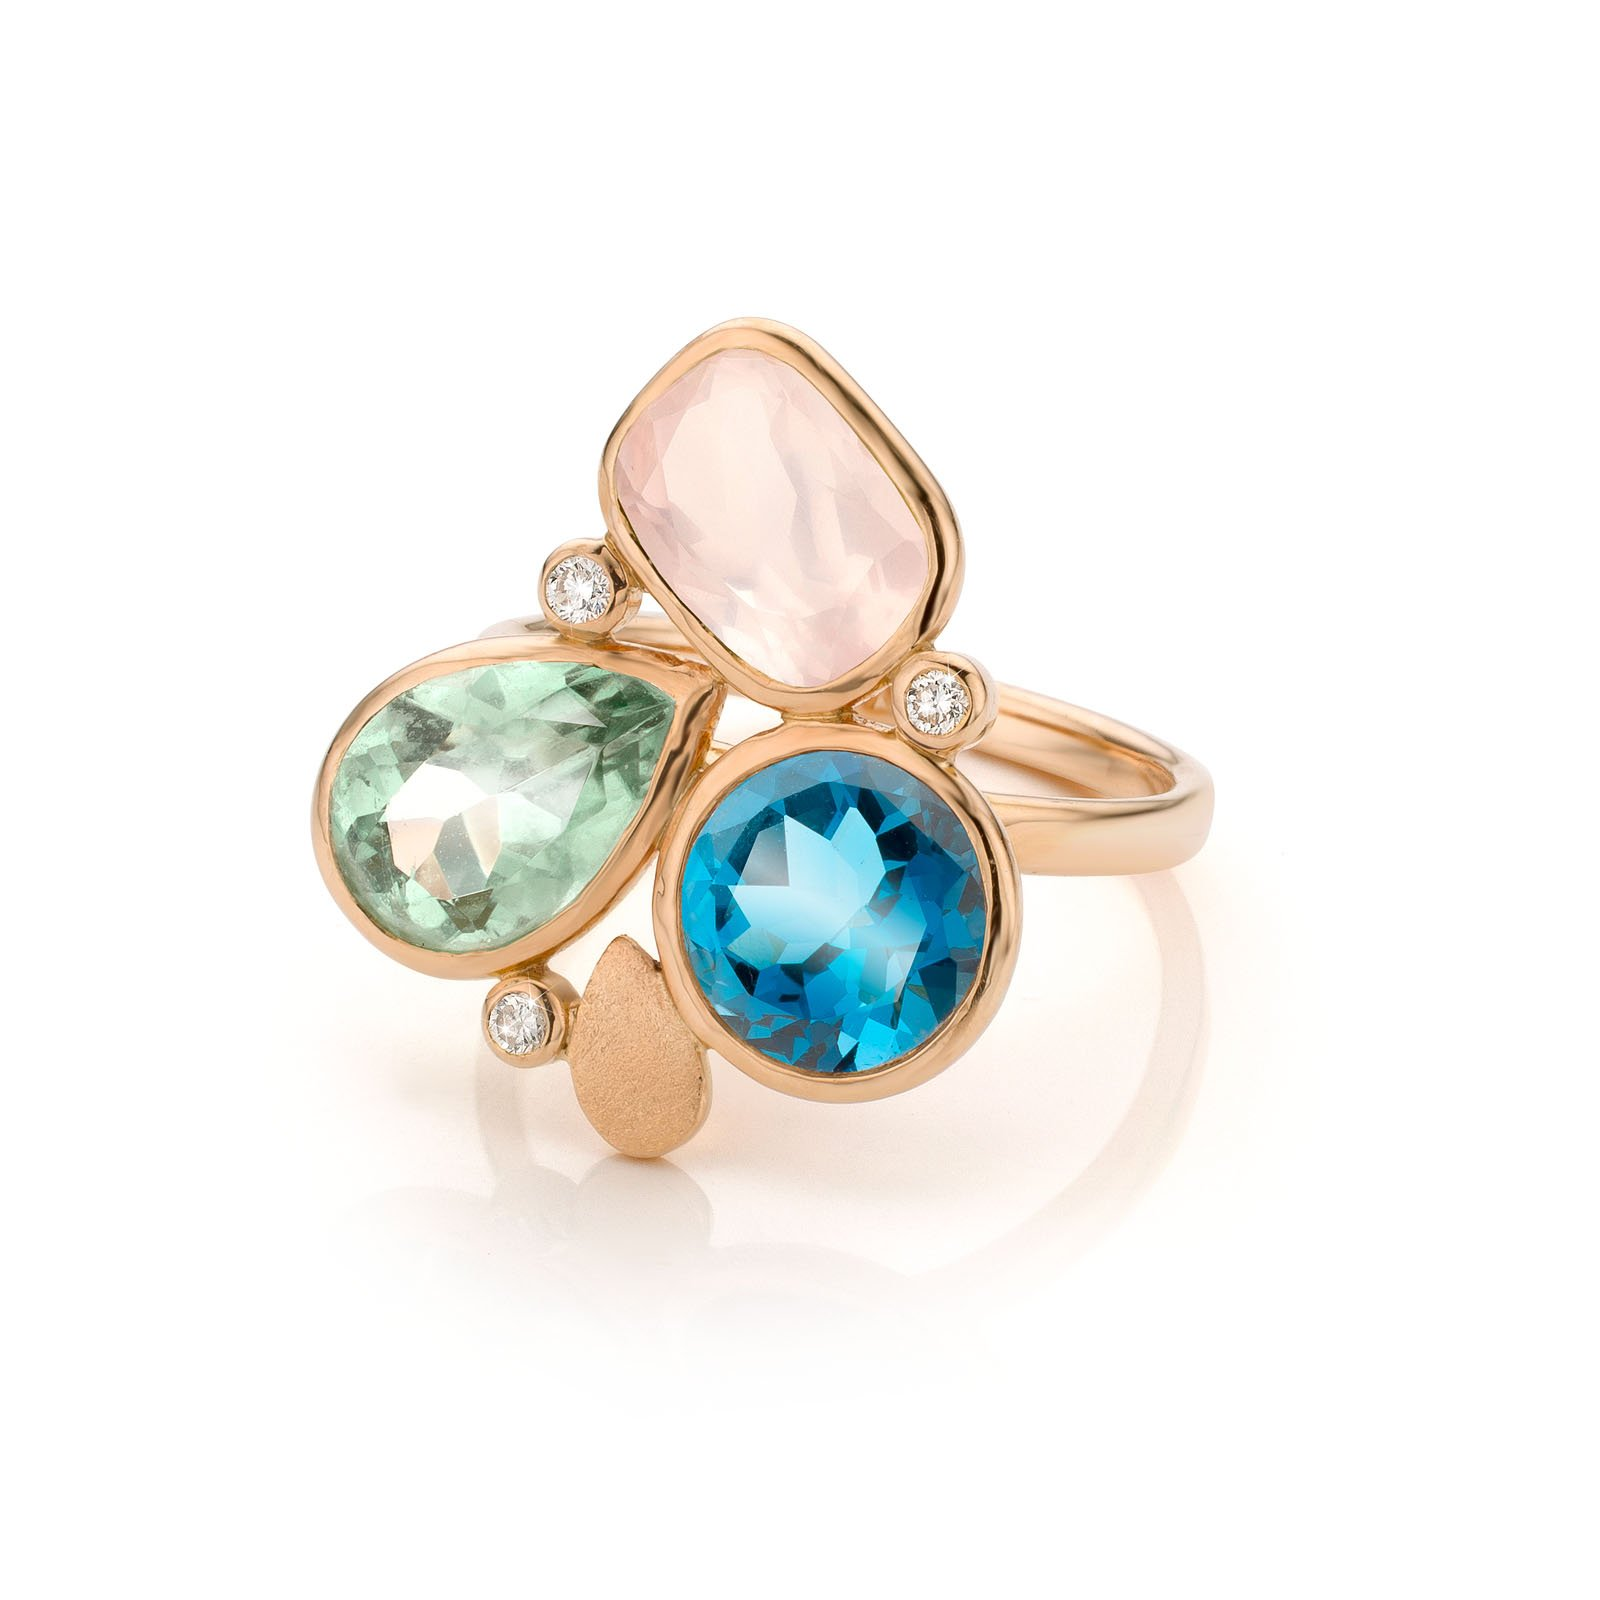 Audrey Huet Joaillerie : Ring N°3 colored and natural stones for elegant women with character MADE in Belgium